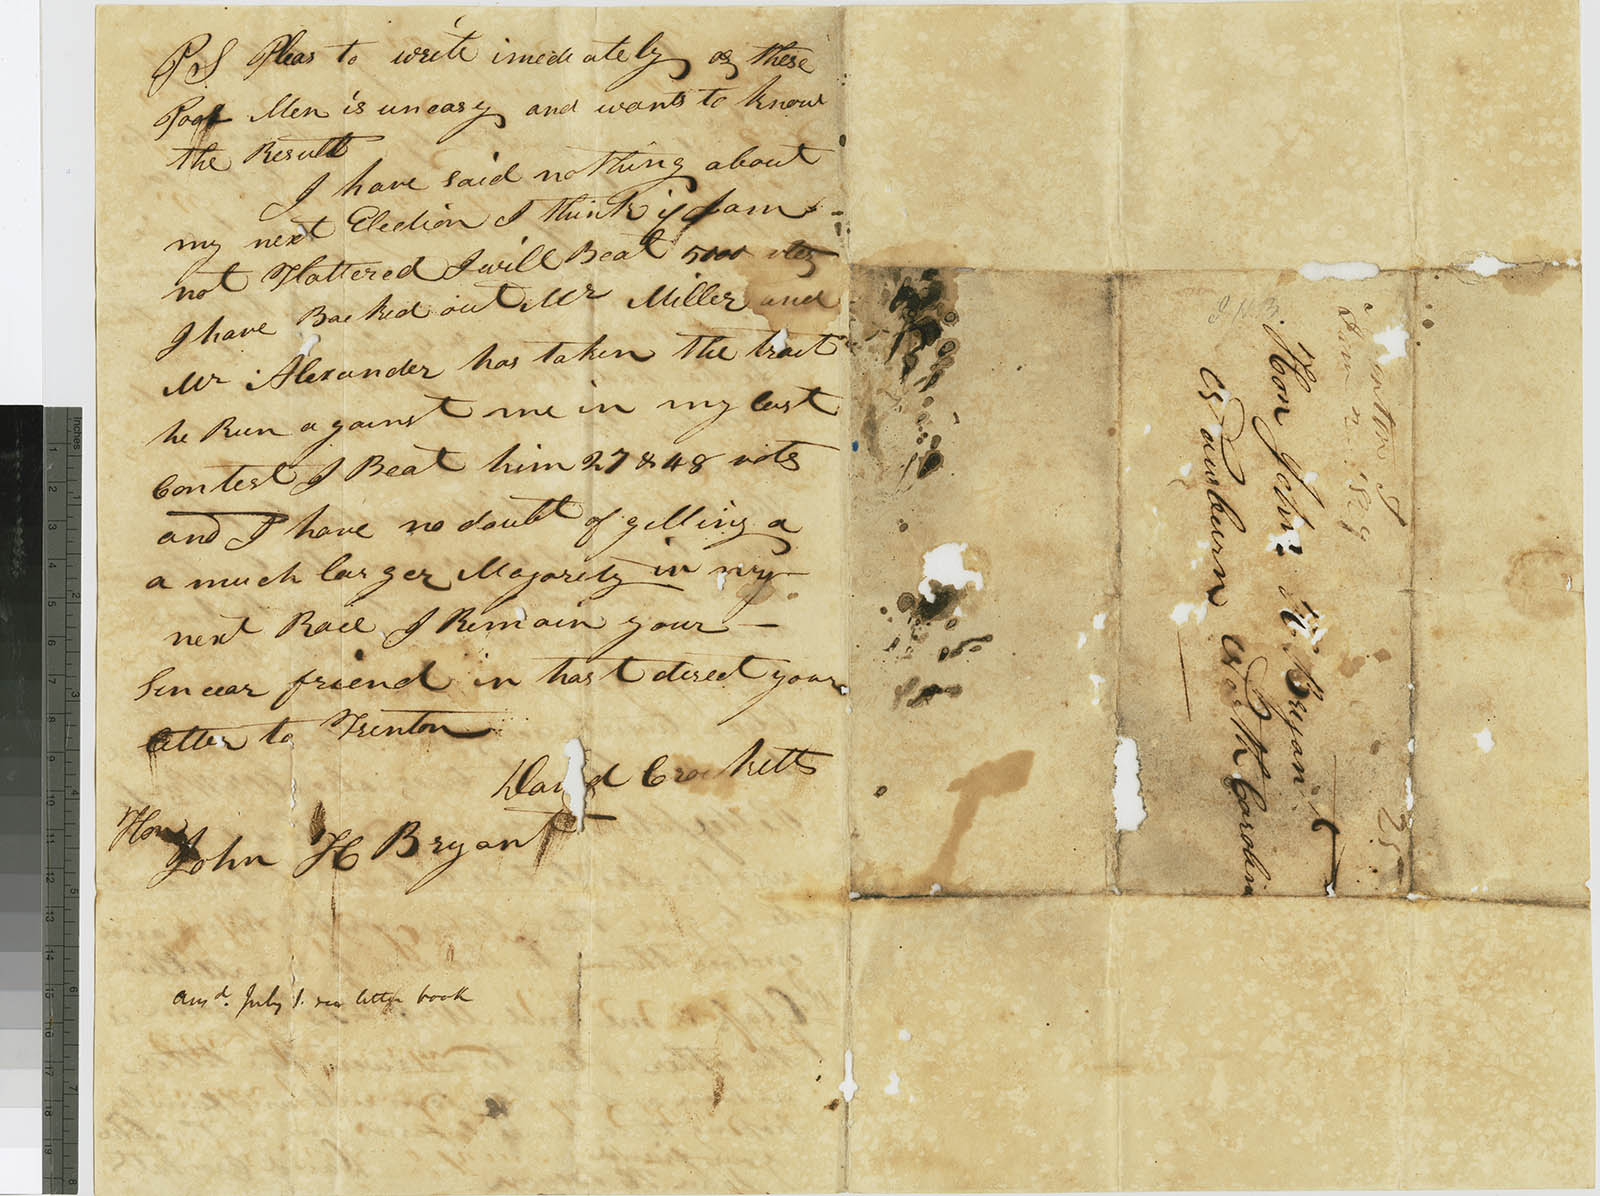 Letter from David Crockett to John H. Bryan, May 26, 1829